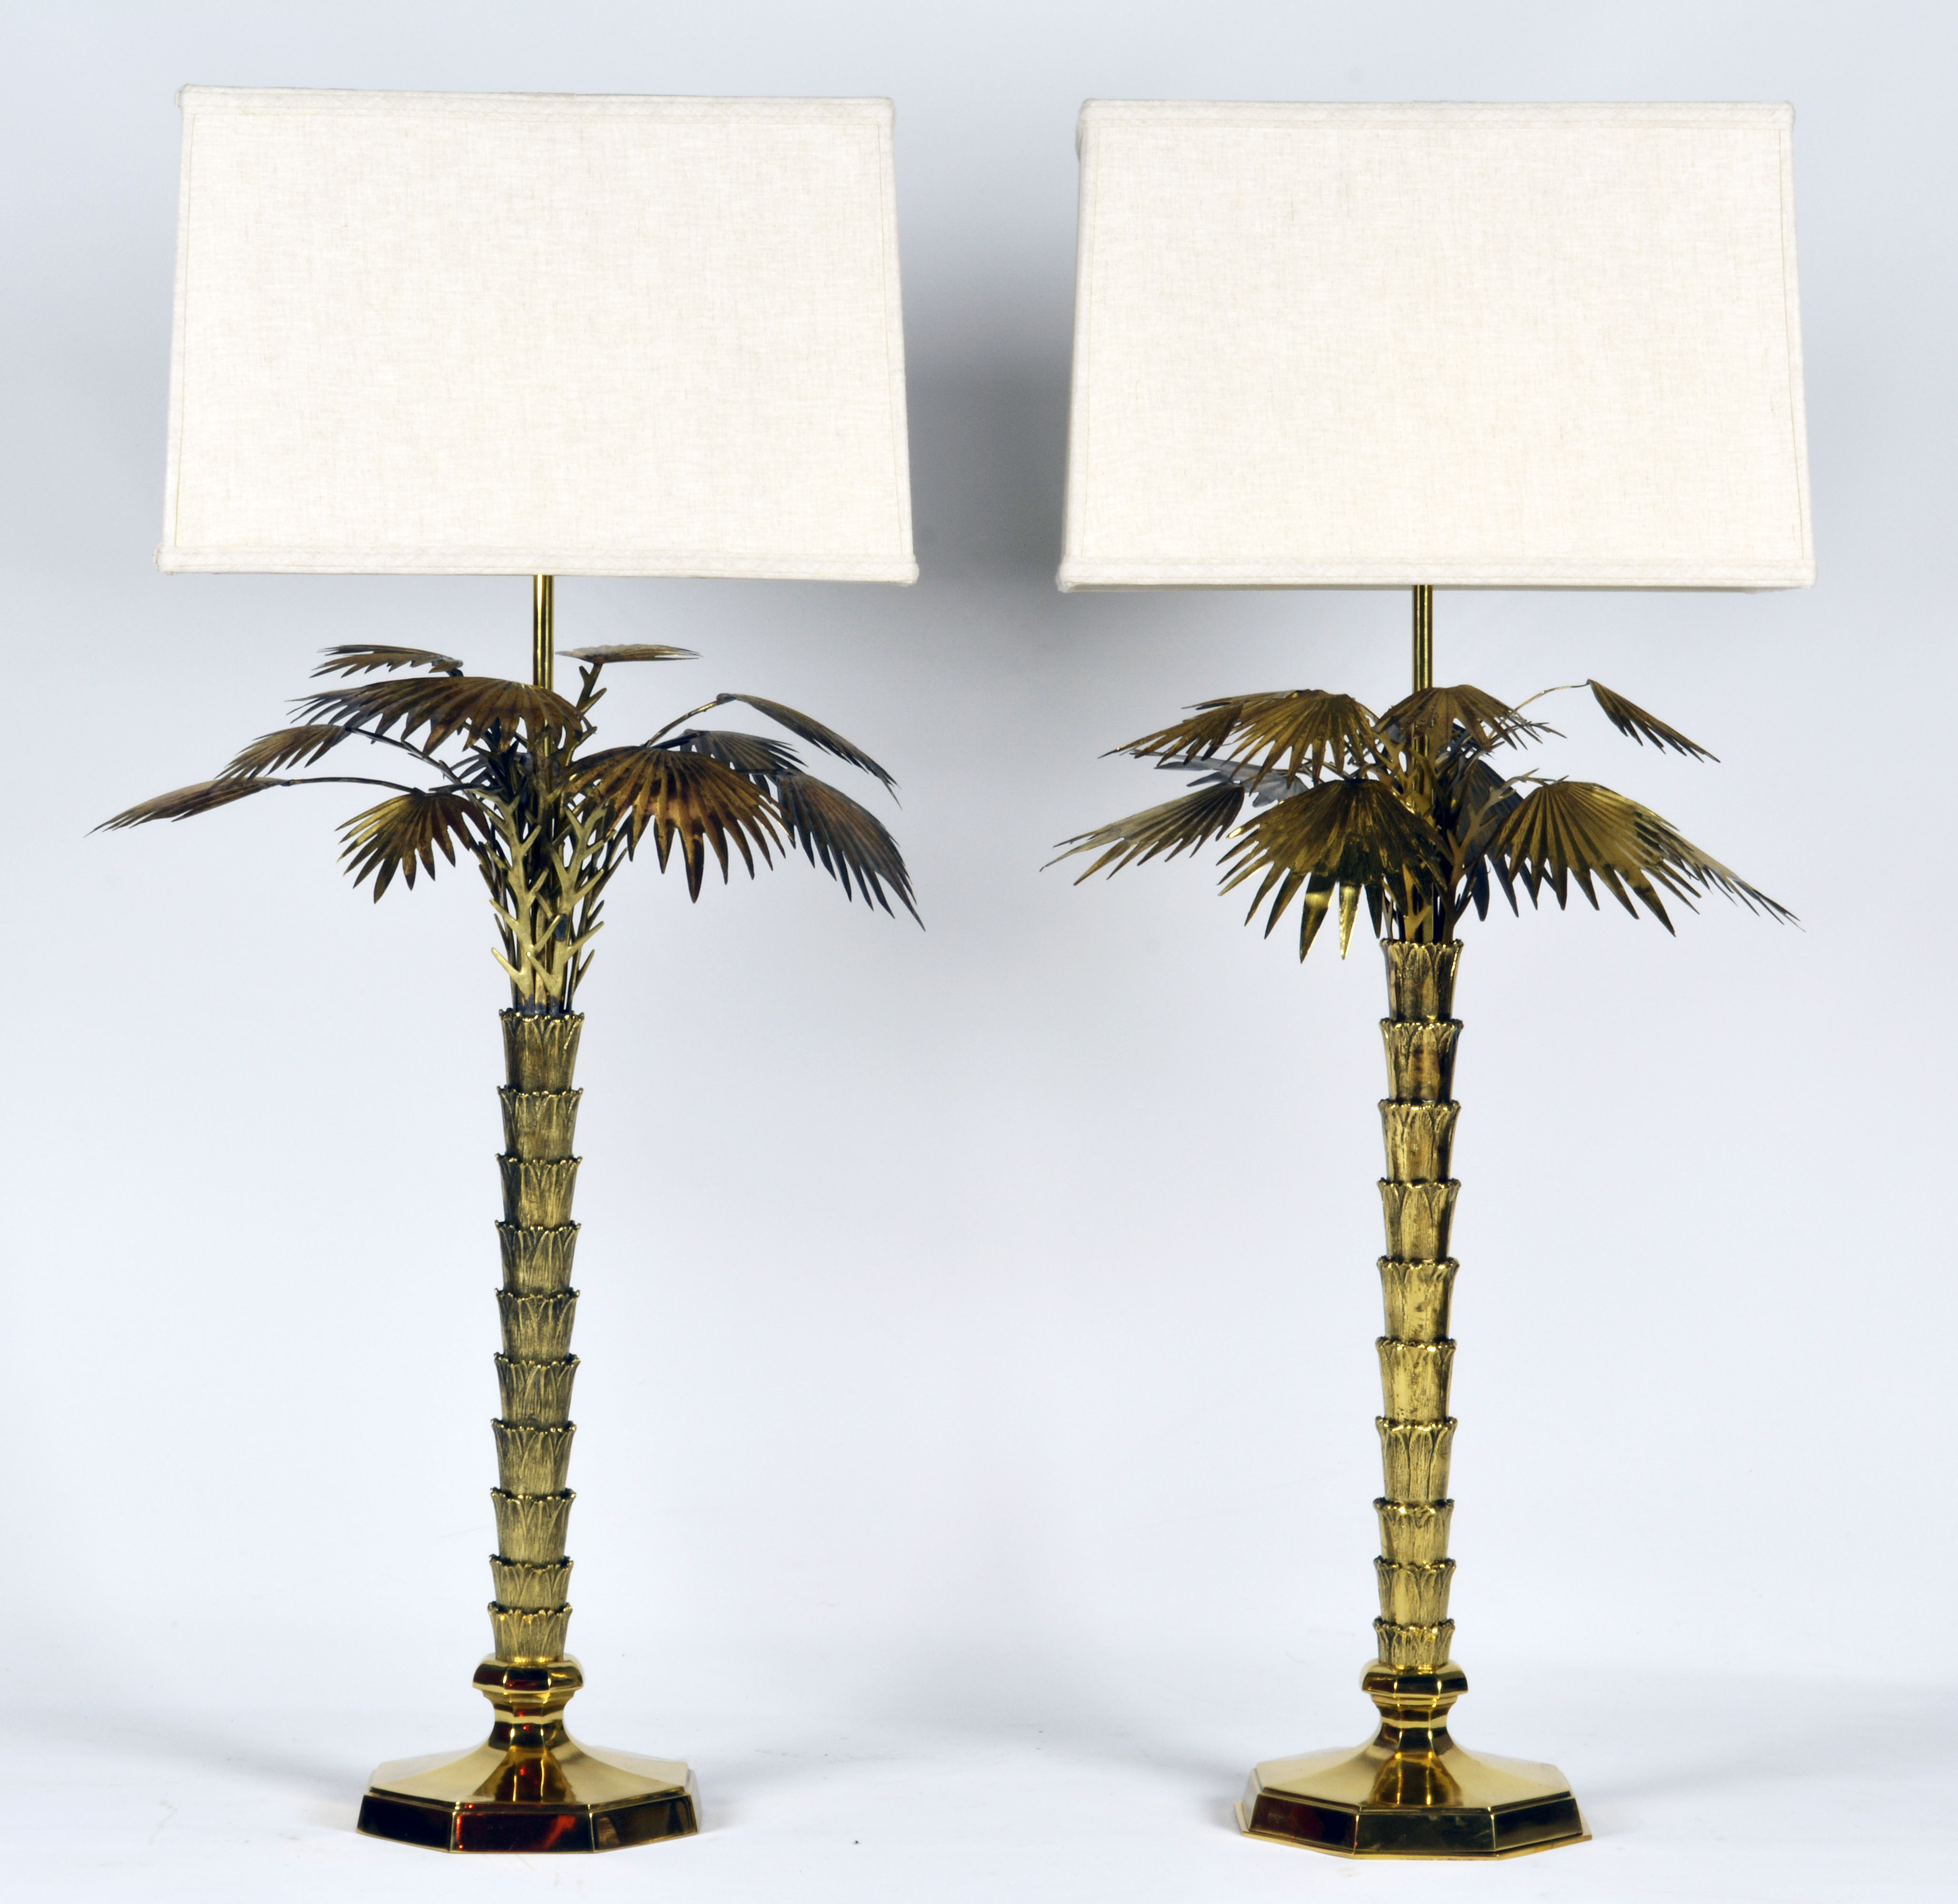 Awesome A Pair Of Striking Mid Century Brass Palm Tree Lamps